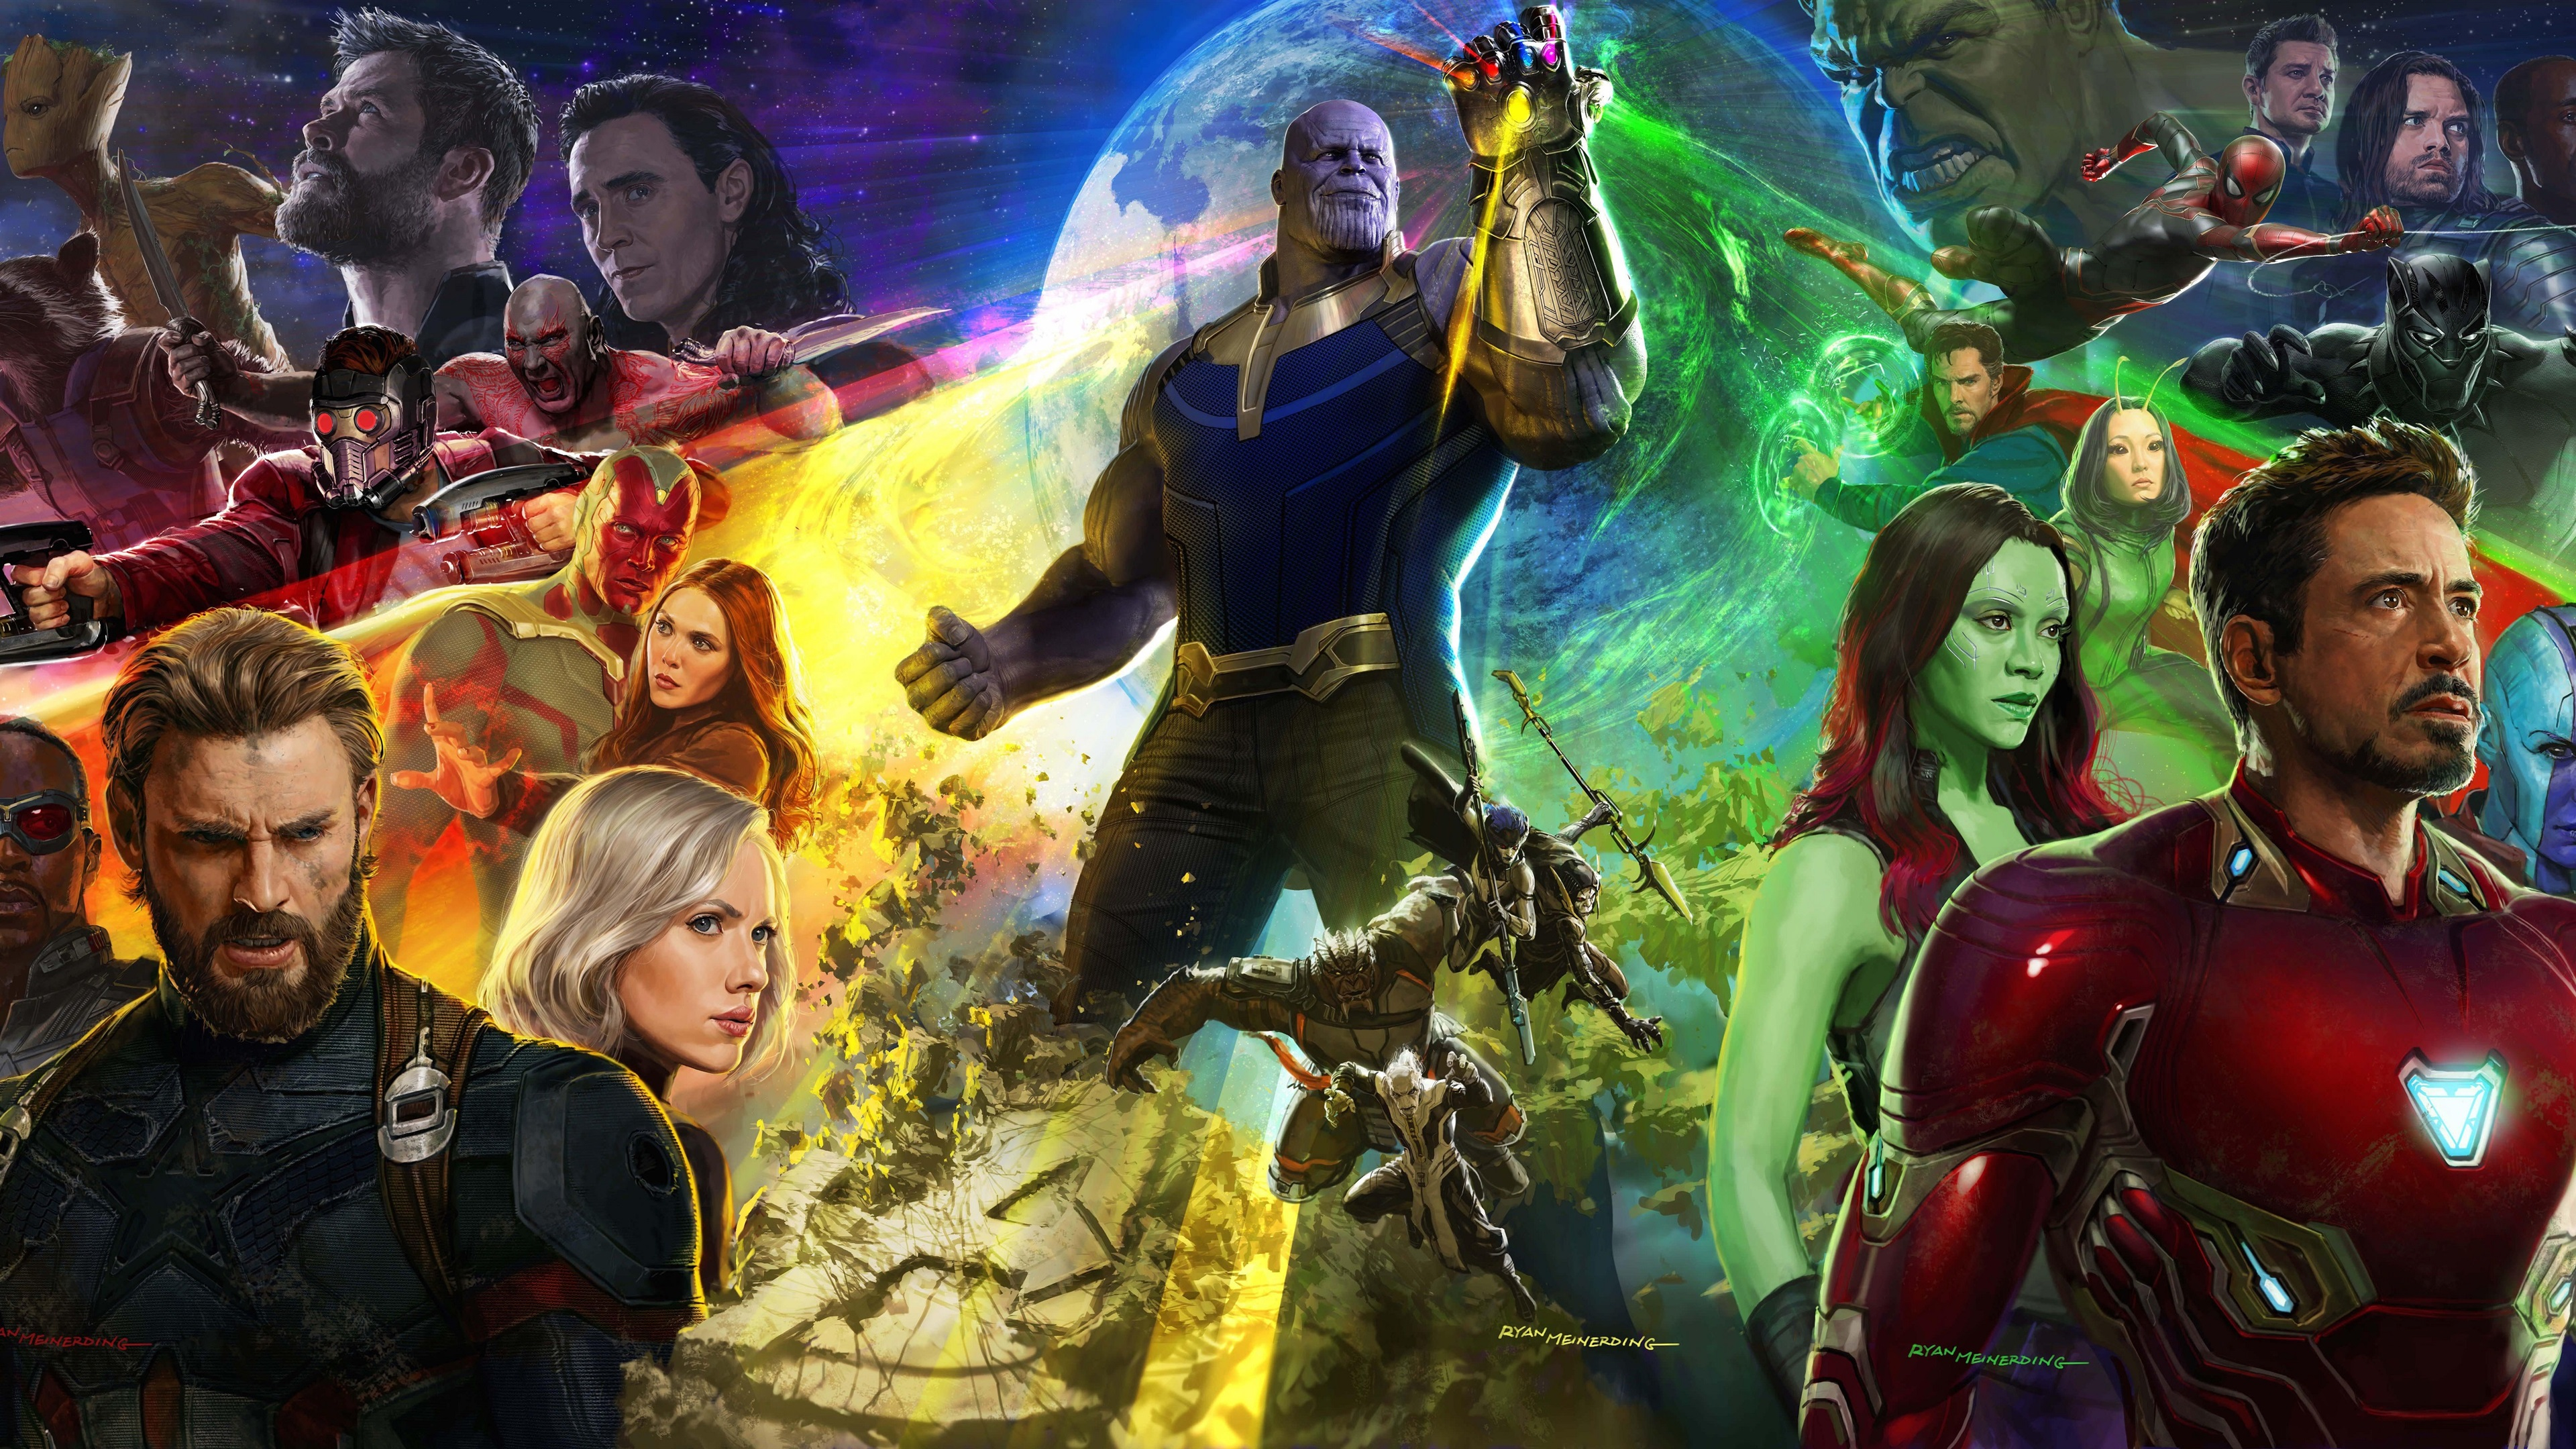 Wallpaper Avengers Infinity War Marvel Movie 2018 3840x2160 Uhd